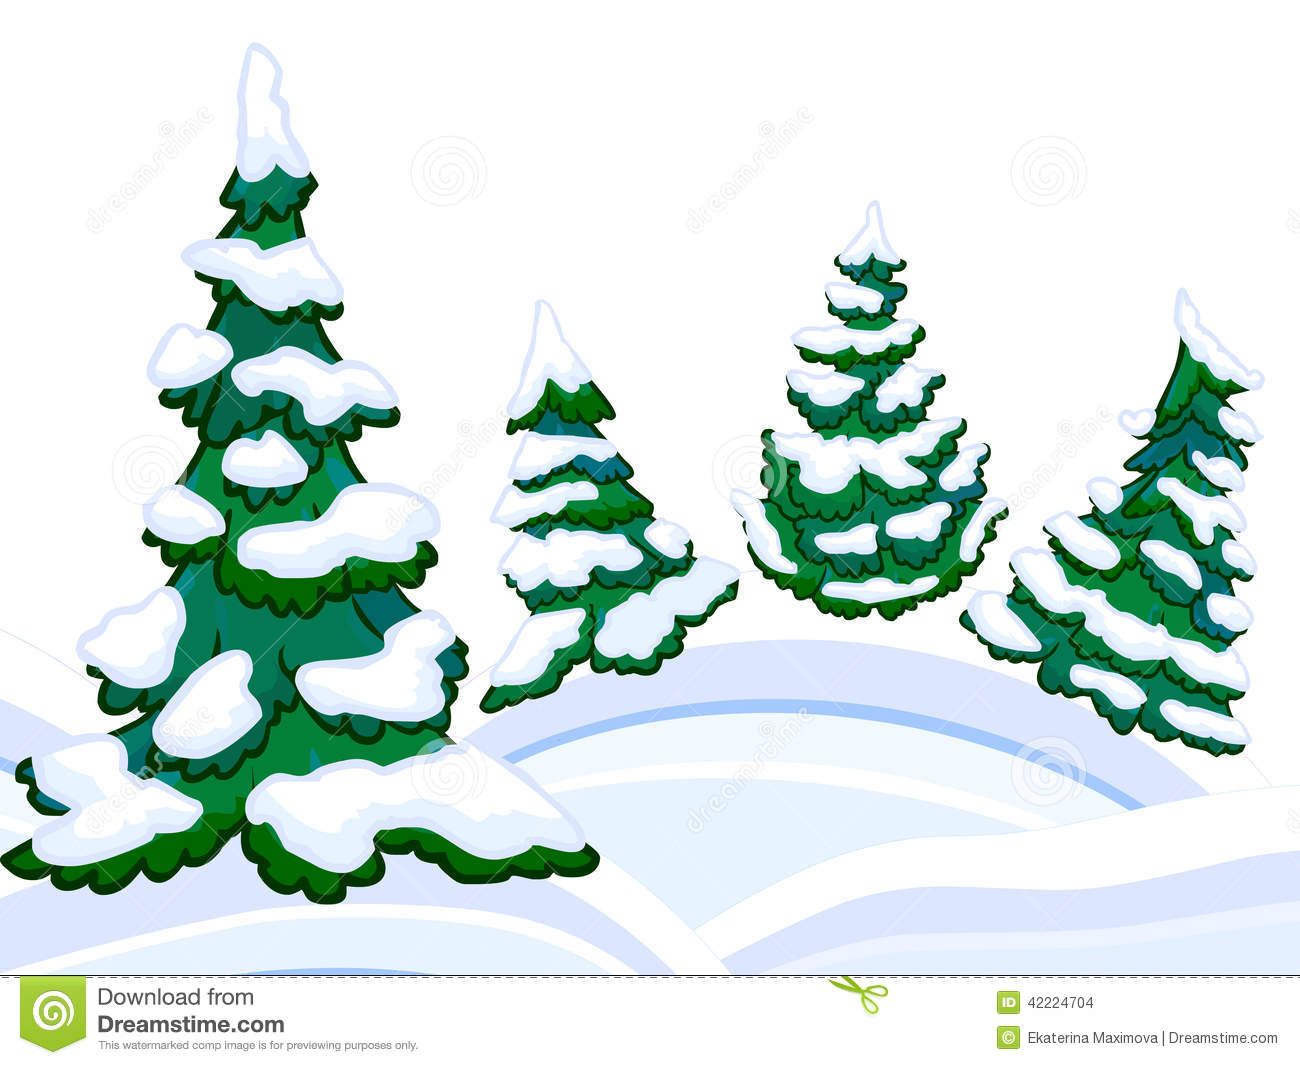 The Cartoon Coniferous Snowy Forest And Winter Snowdrifts